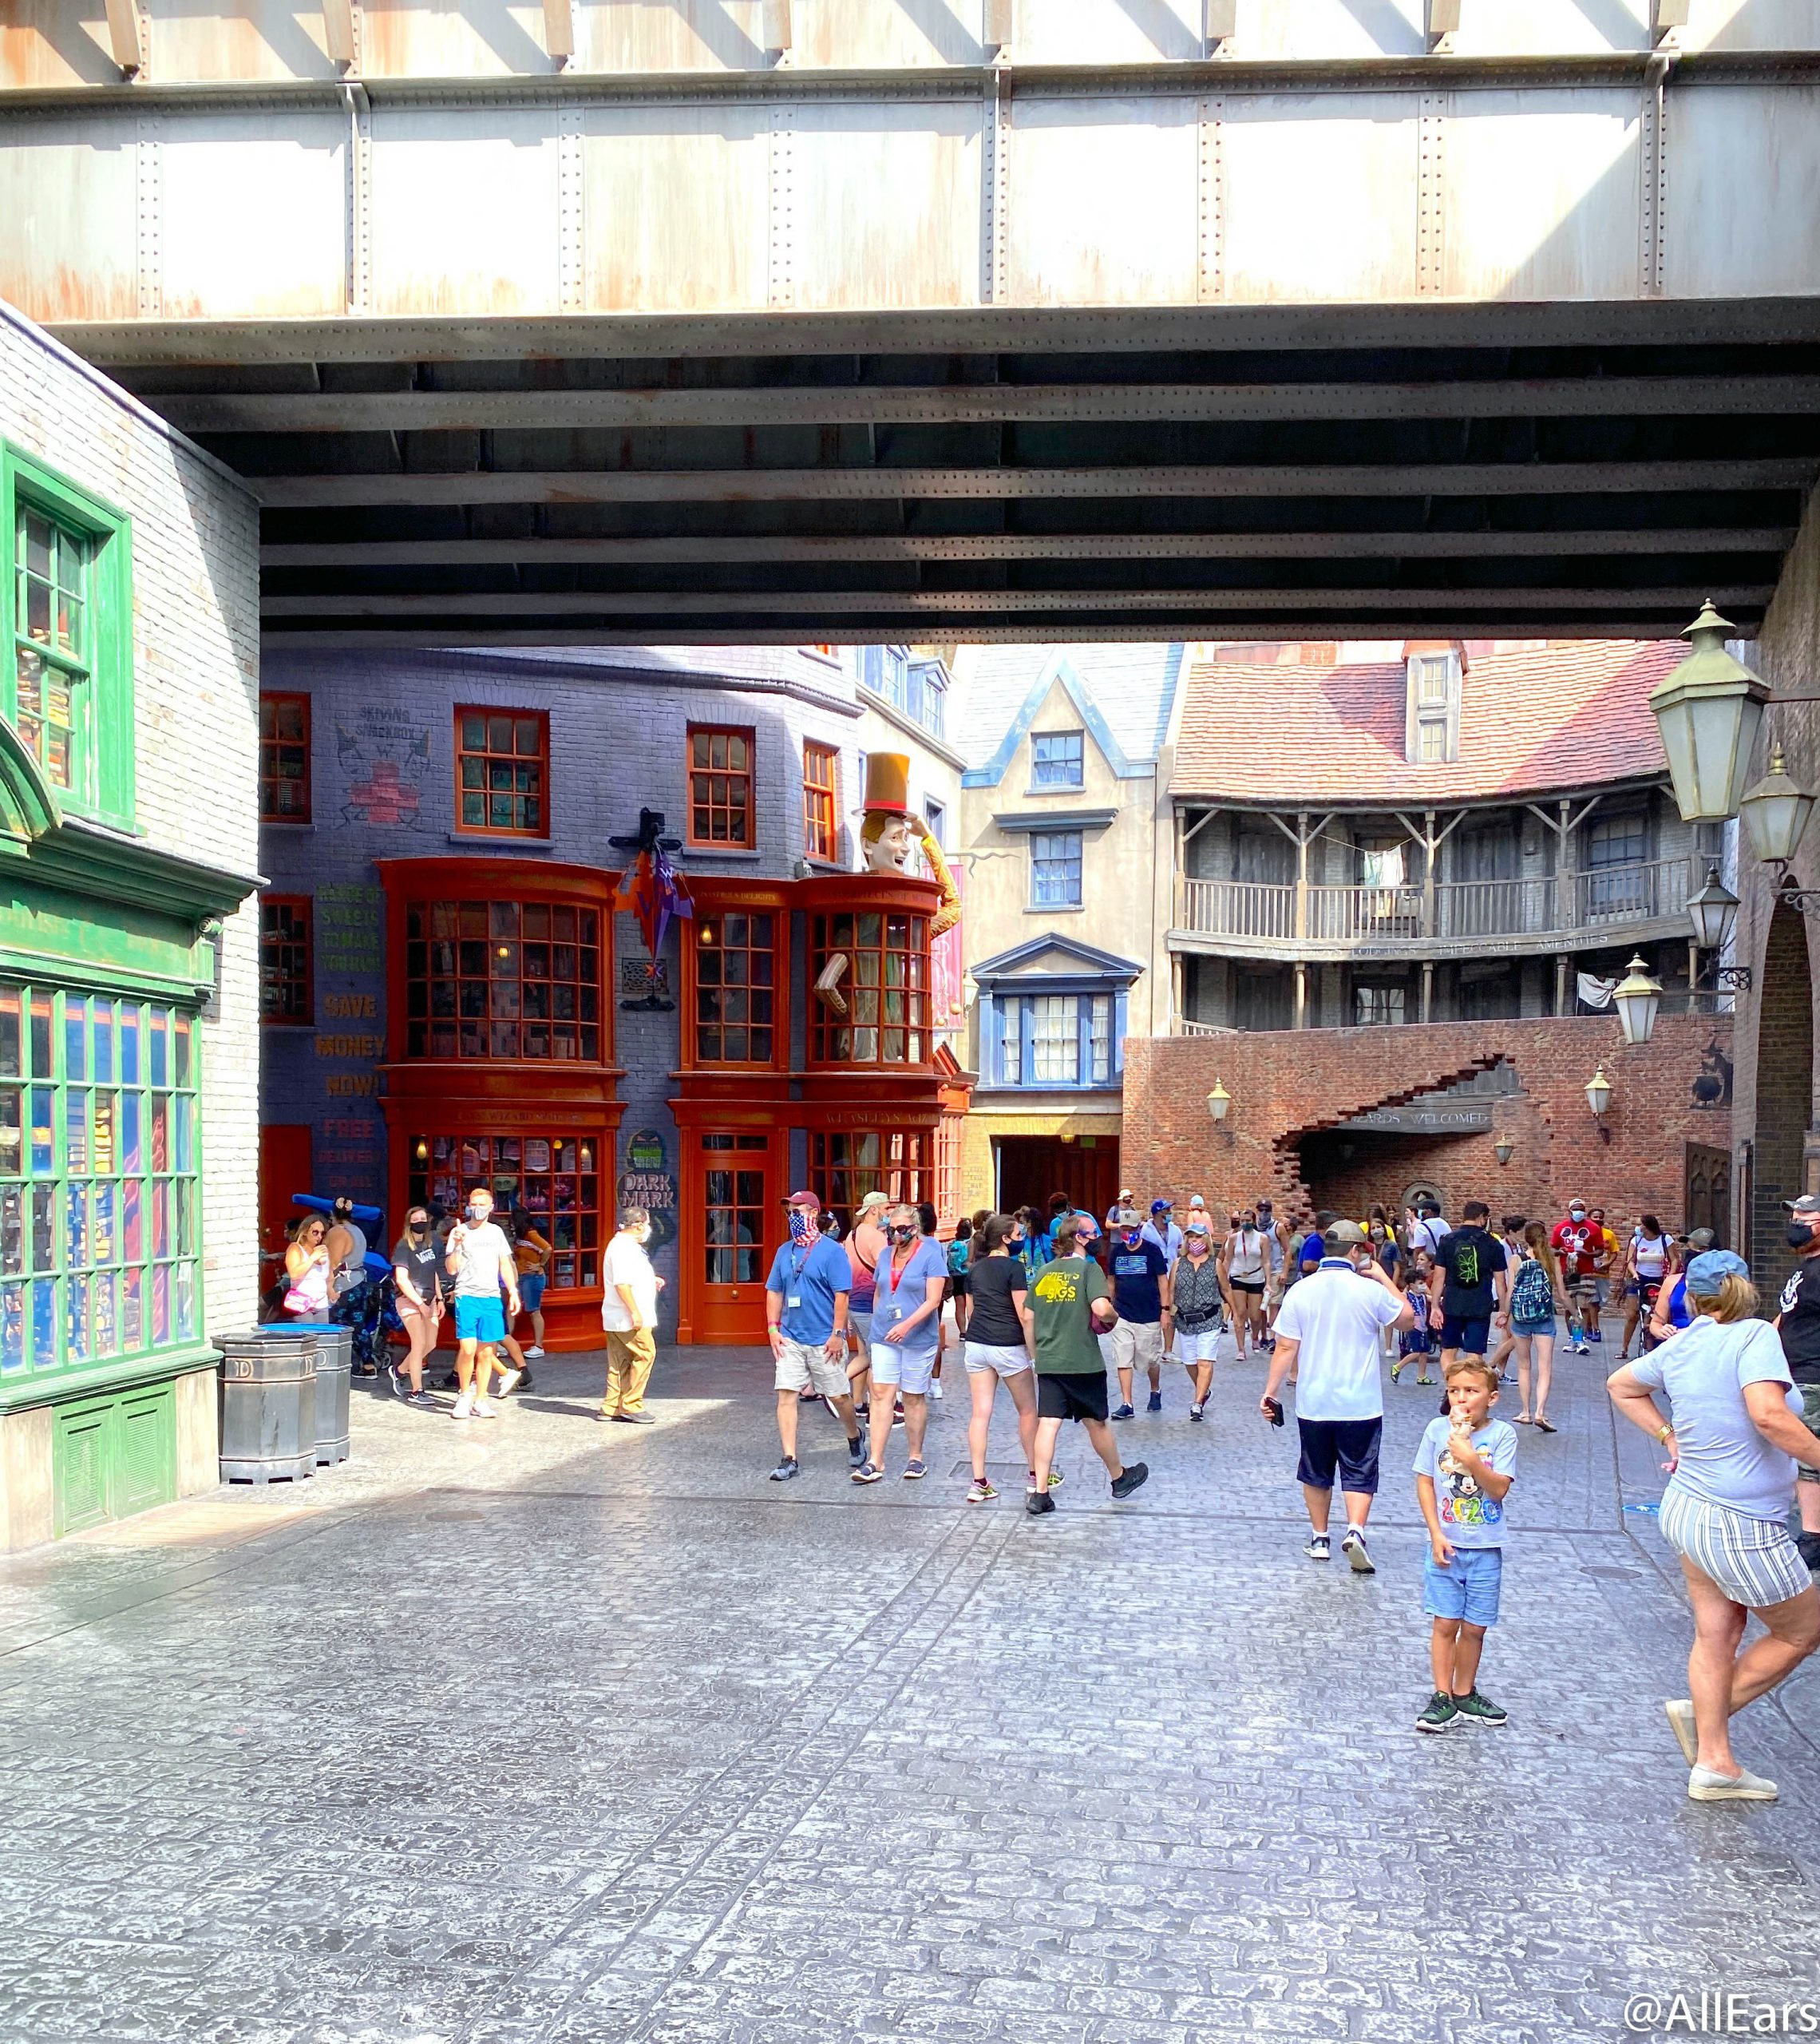 Can You Go In Diagon Alley In Halloween Horror Nights 2020 That's A LOT of Halloween Horror Nights Fans! Here's What the